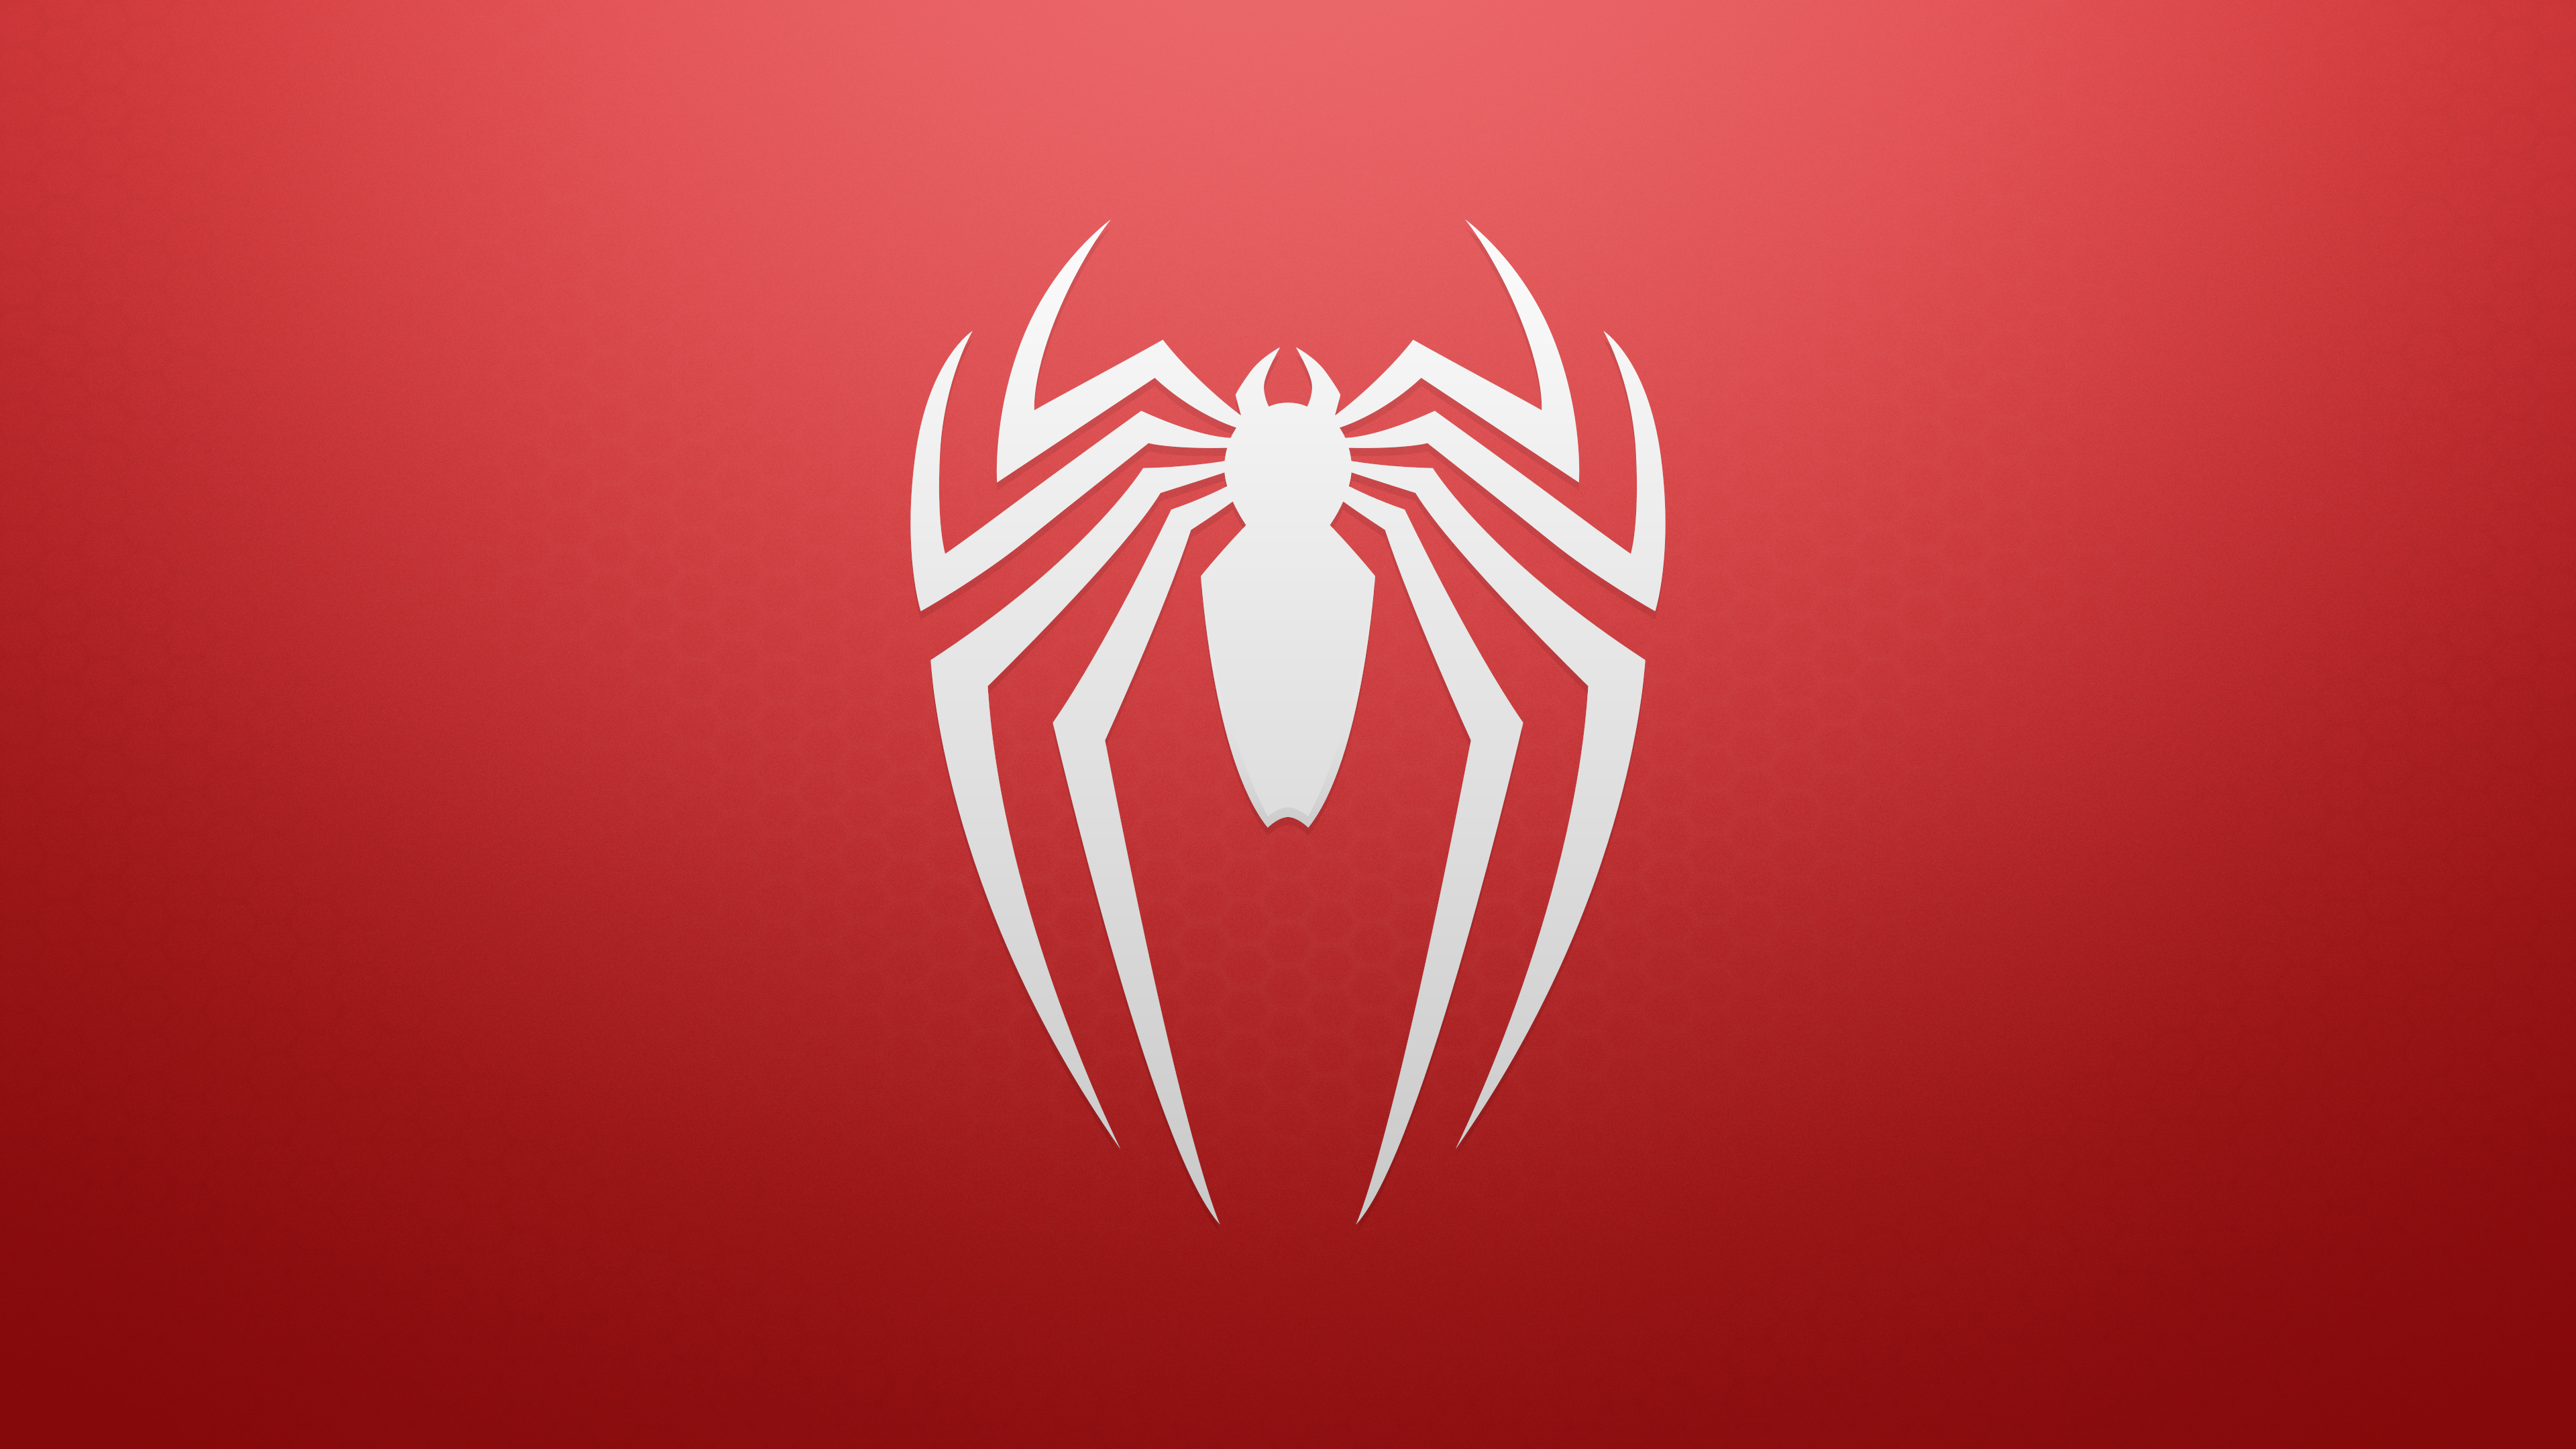 spiderman 4k ps logo 1538343511 - Spiderman 4k Ps Logo - spiderman wallpapers, ps games wallpapers, logo wallpapers, hd-wallpapers, games wallpapers, deviantart wallpapers, artist wallpapers, 4k-wallpapers, 2018 games wallpapers